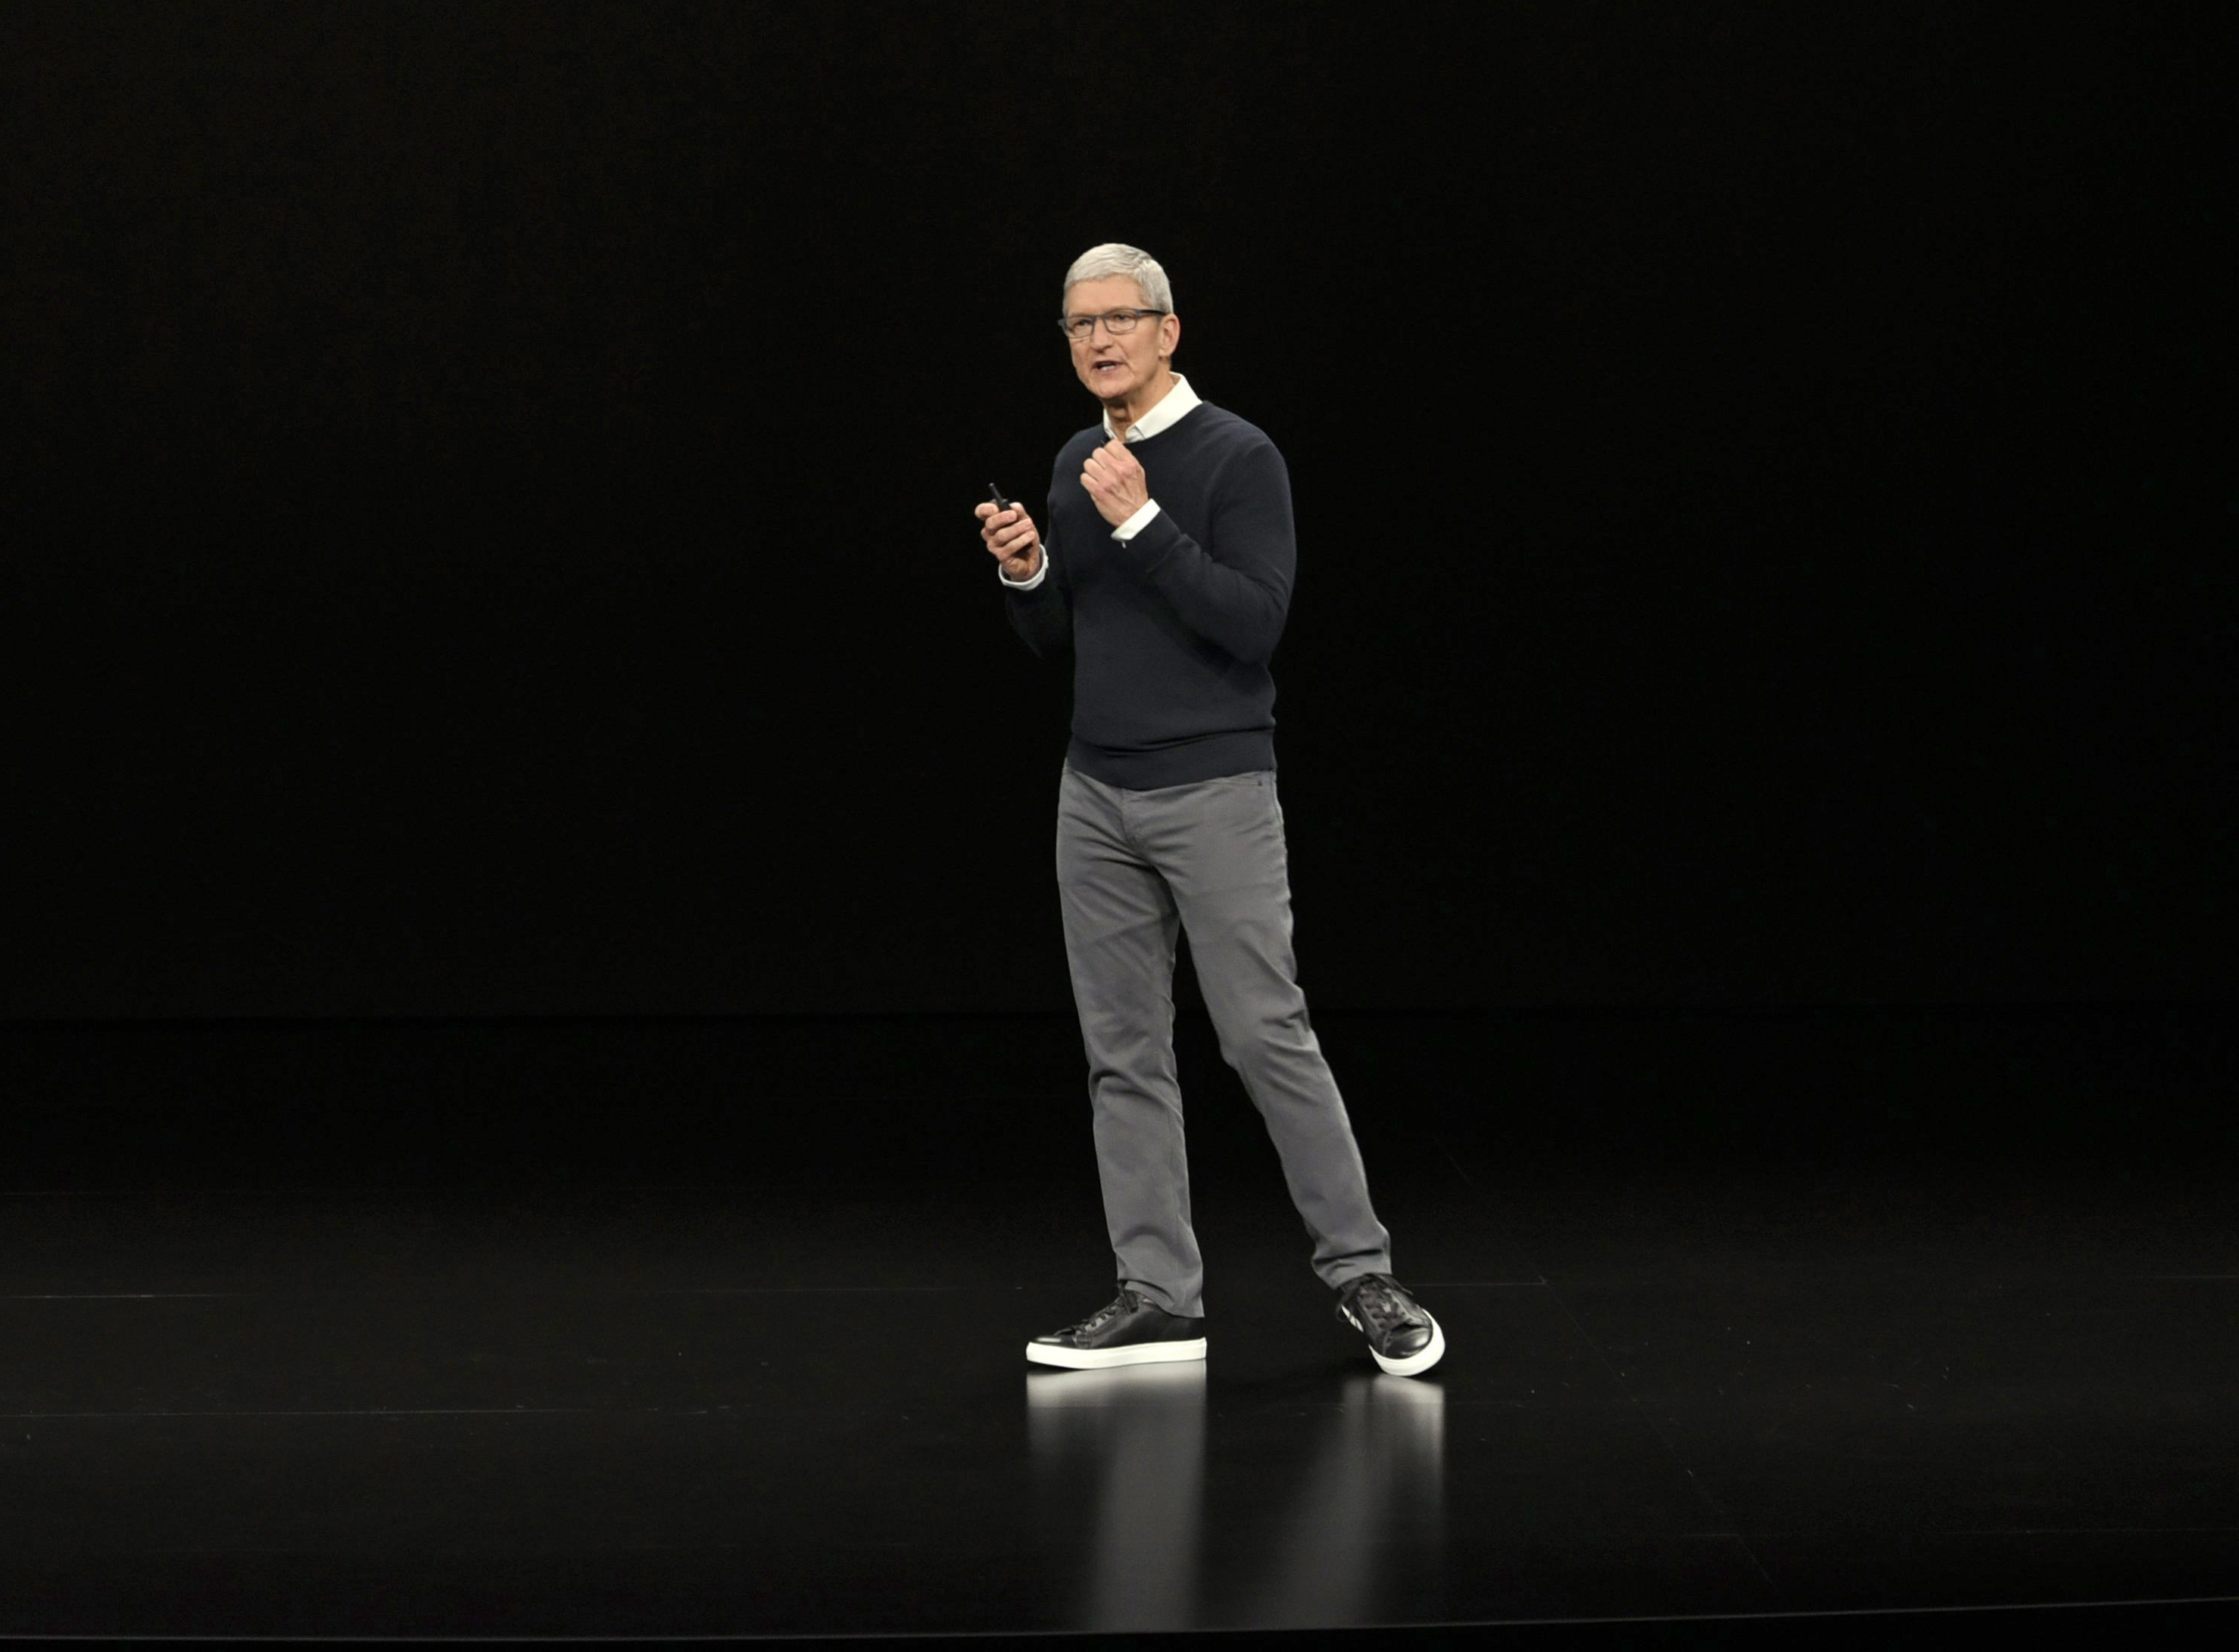 Apple Event Tv News And Video Game Services Signal New Direction For Iphone Maker